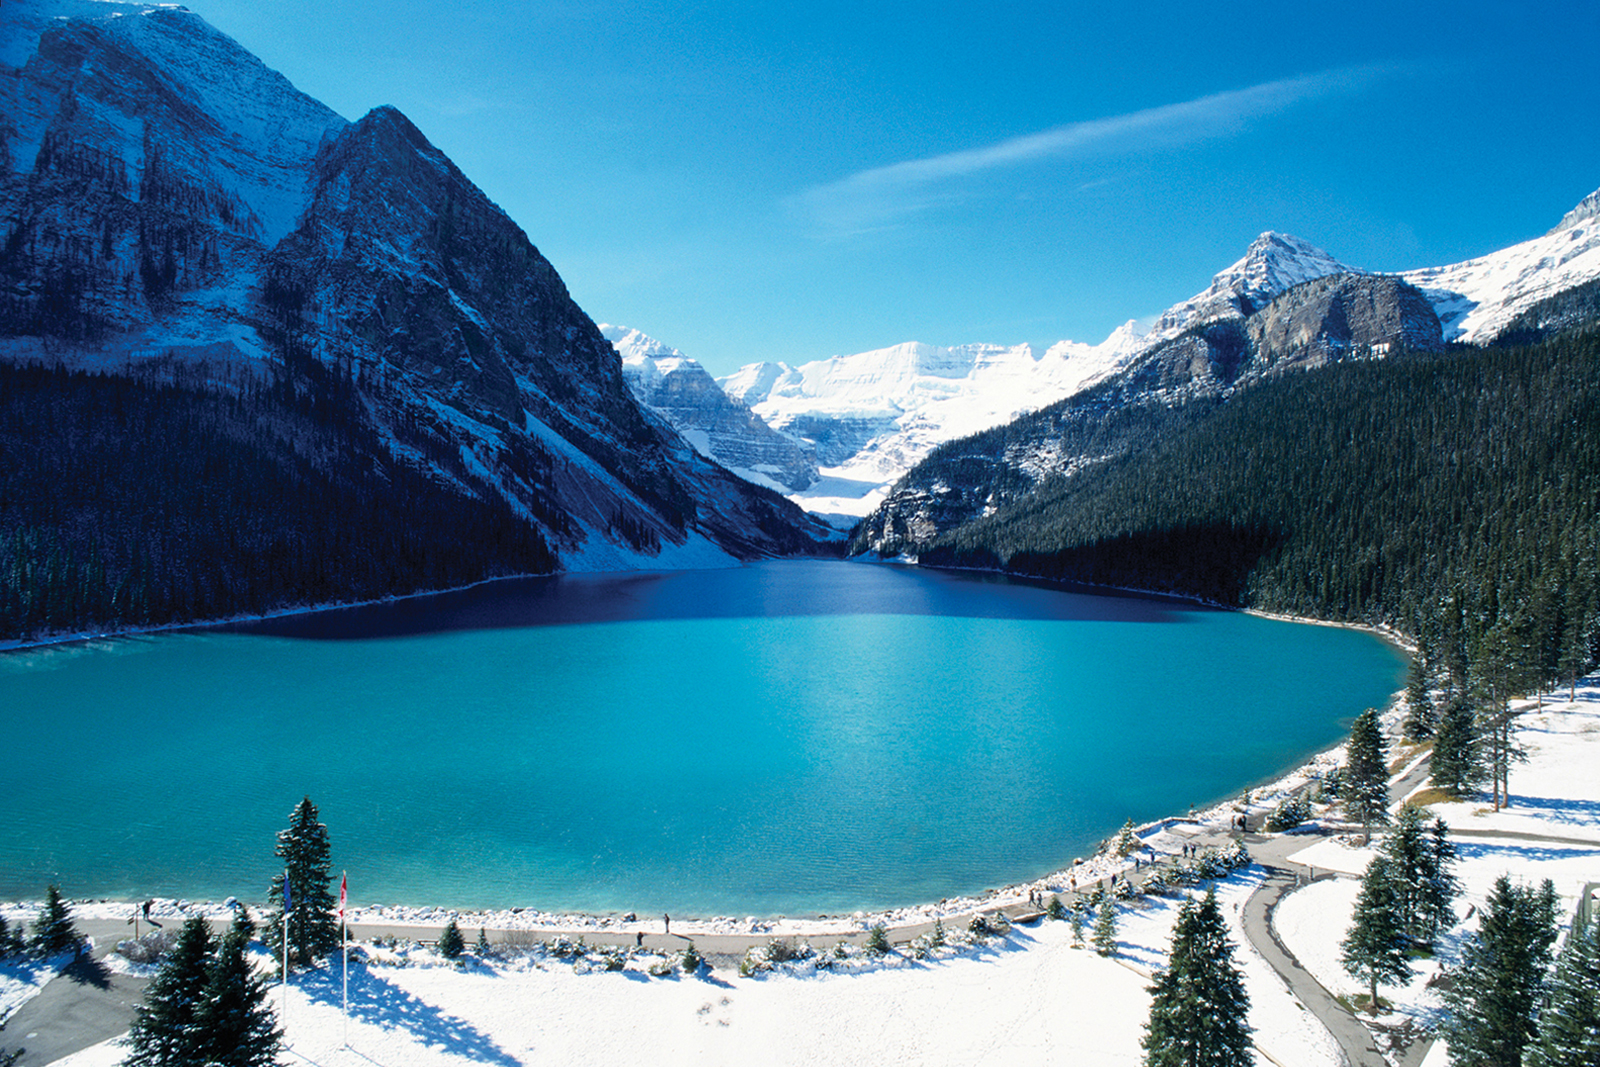 Lake Louise Sport & Recreation Centre Selects Book King Software